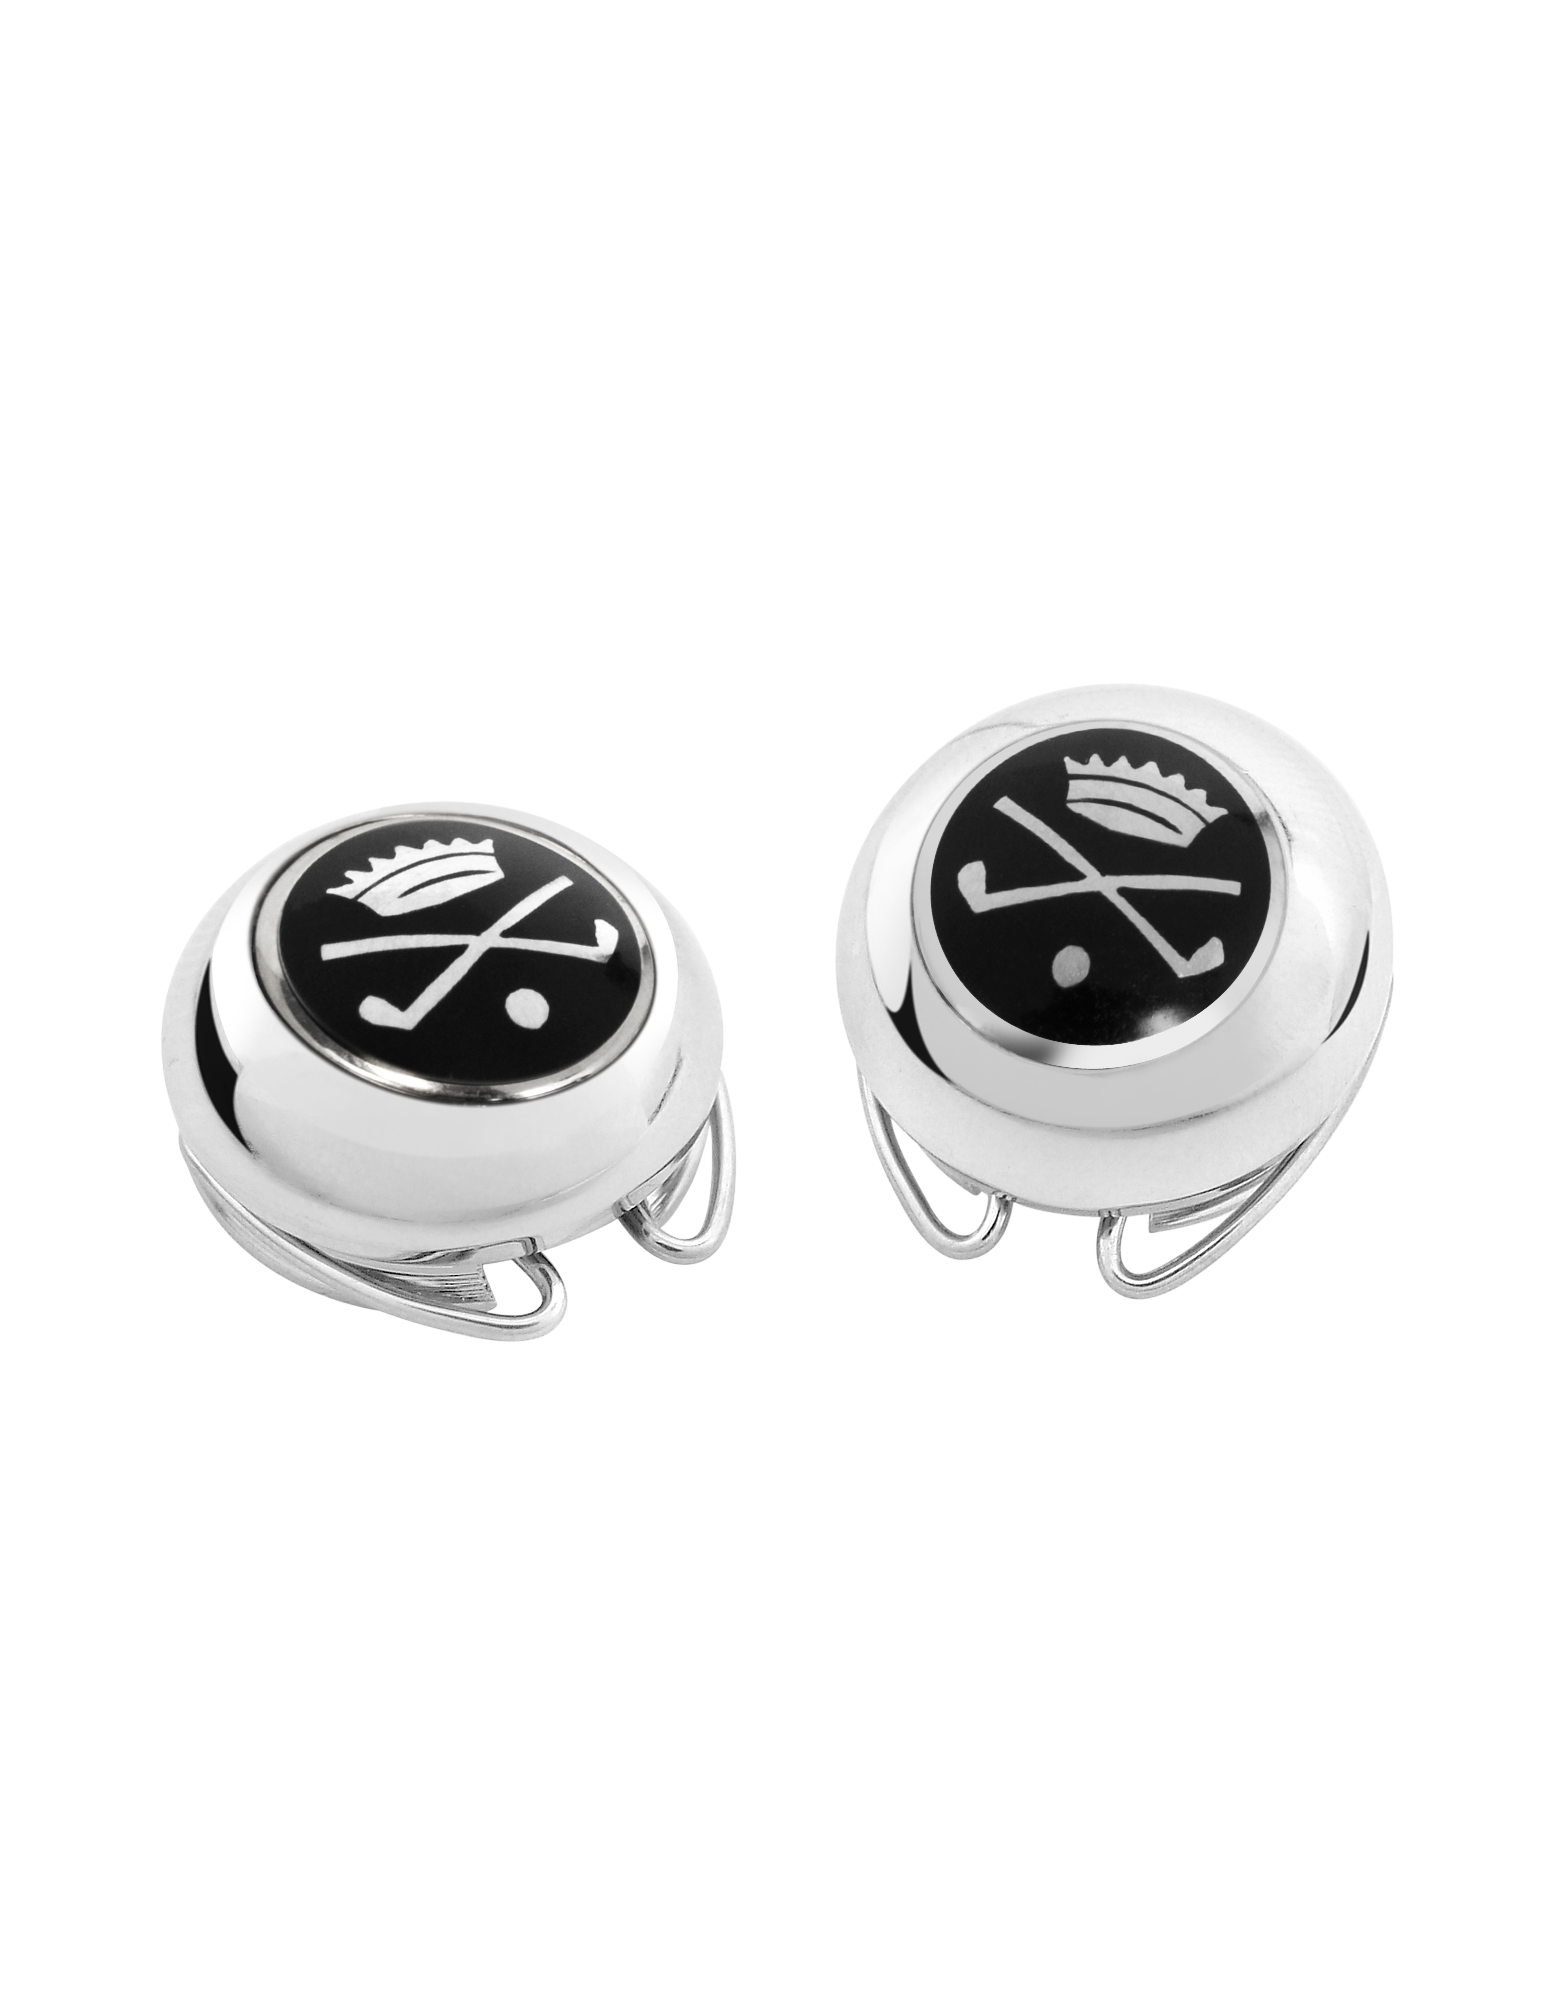 Image of Golf and Crown Silver Plated Button Covers